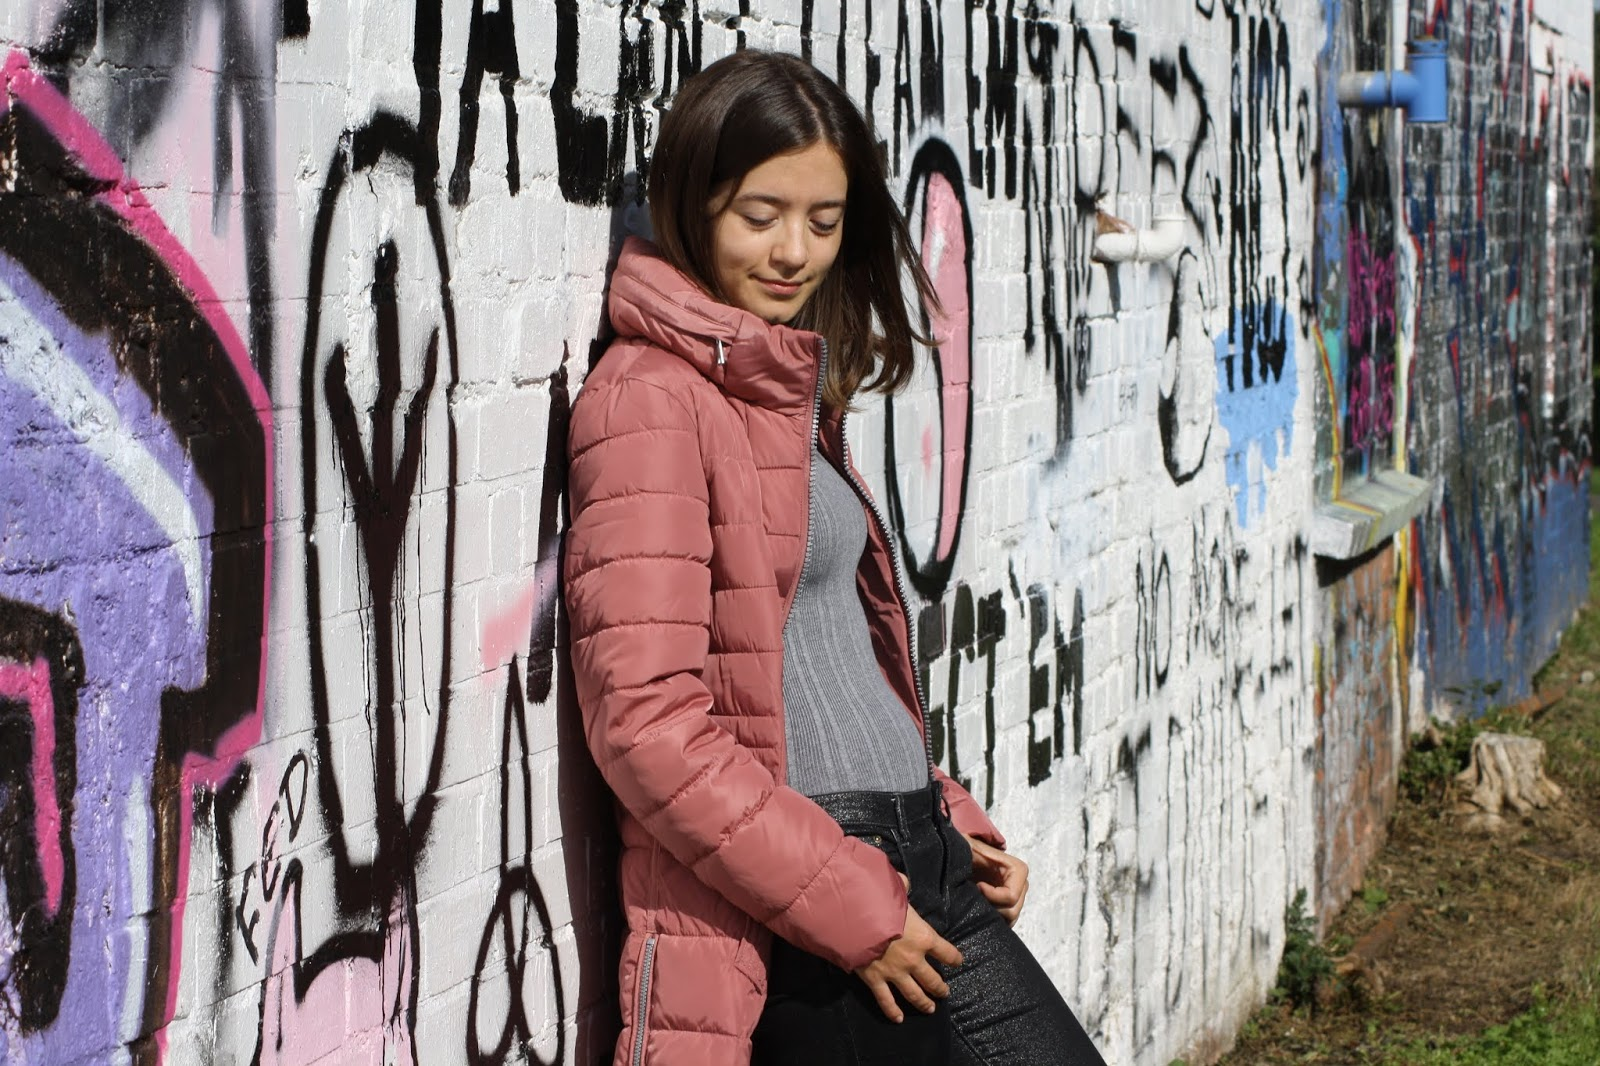 Abbey, wearing a pink puffer jacket, leans on a graffiti wall, looking down